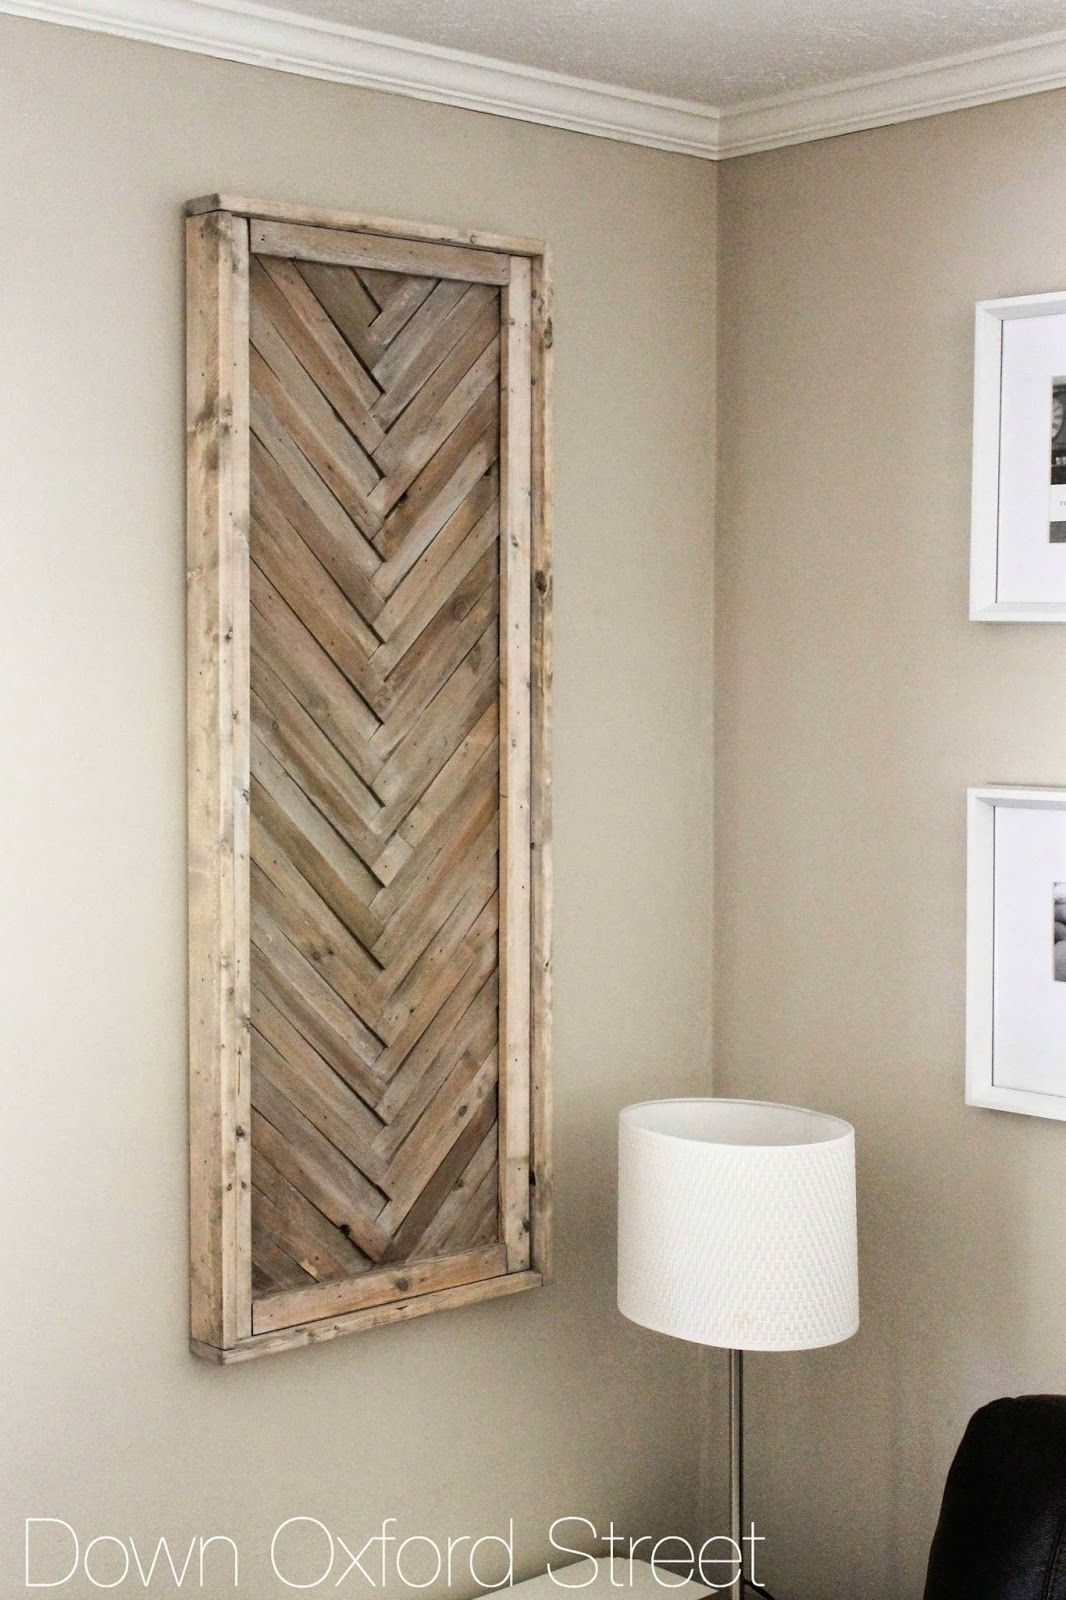 Down Oxford Street: Diy Wood Shim Wall Art | Diy Wood | Pinterest Inside Latest Diy Wood Wall Art (View 12 of 20)